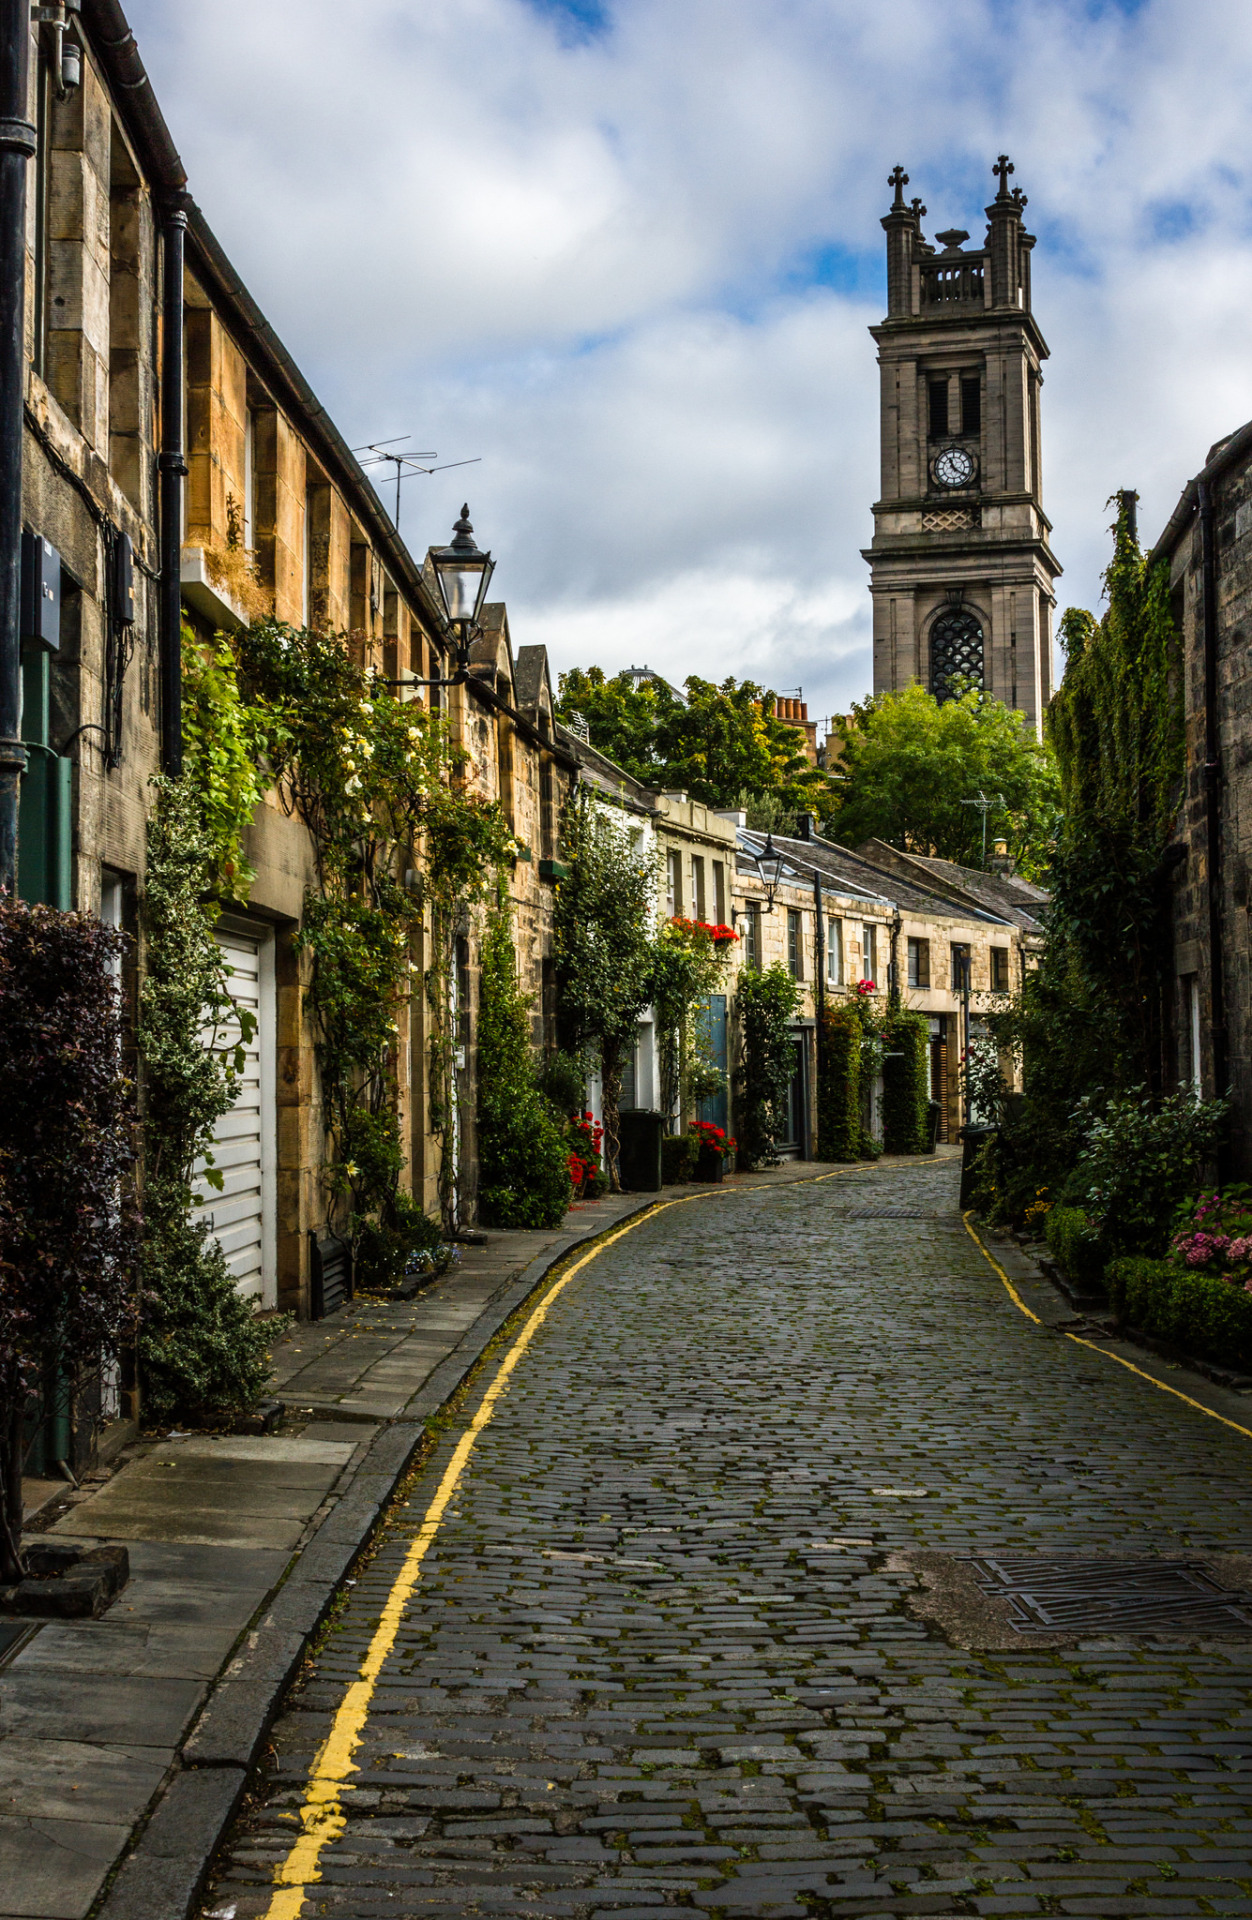 Circus Lane, Edinburgh / Scotland